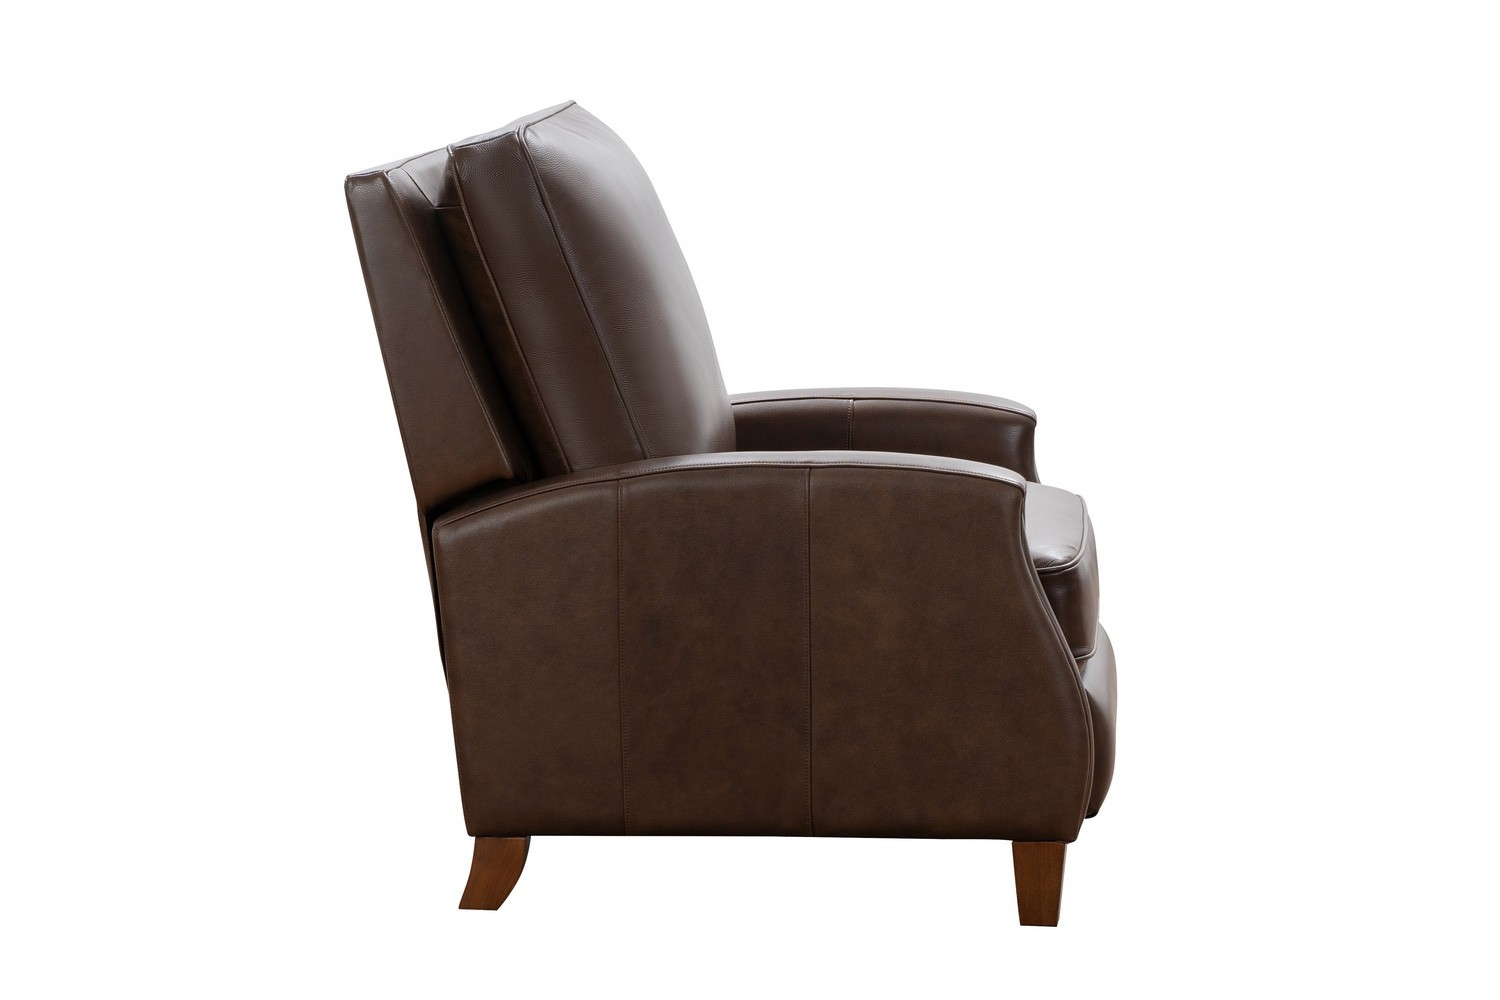 Barcalounger Penrose Recliner Chair - Wenlock Double Chocolate/All Leather